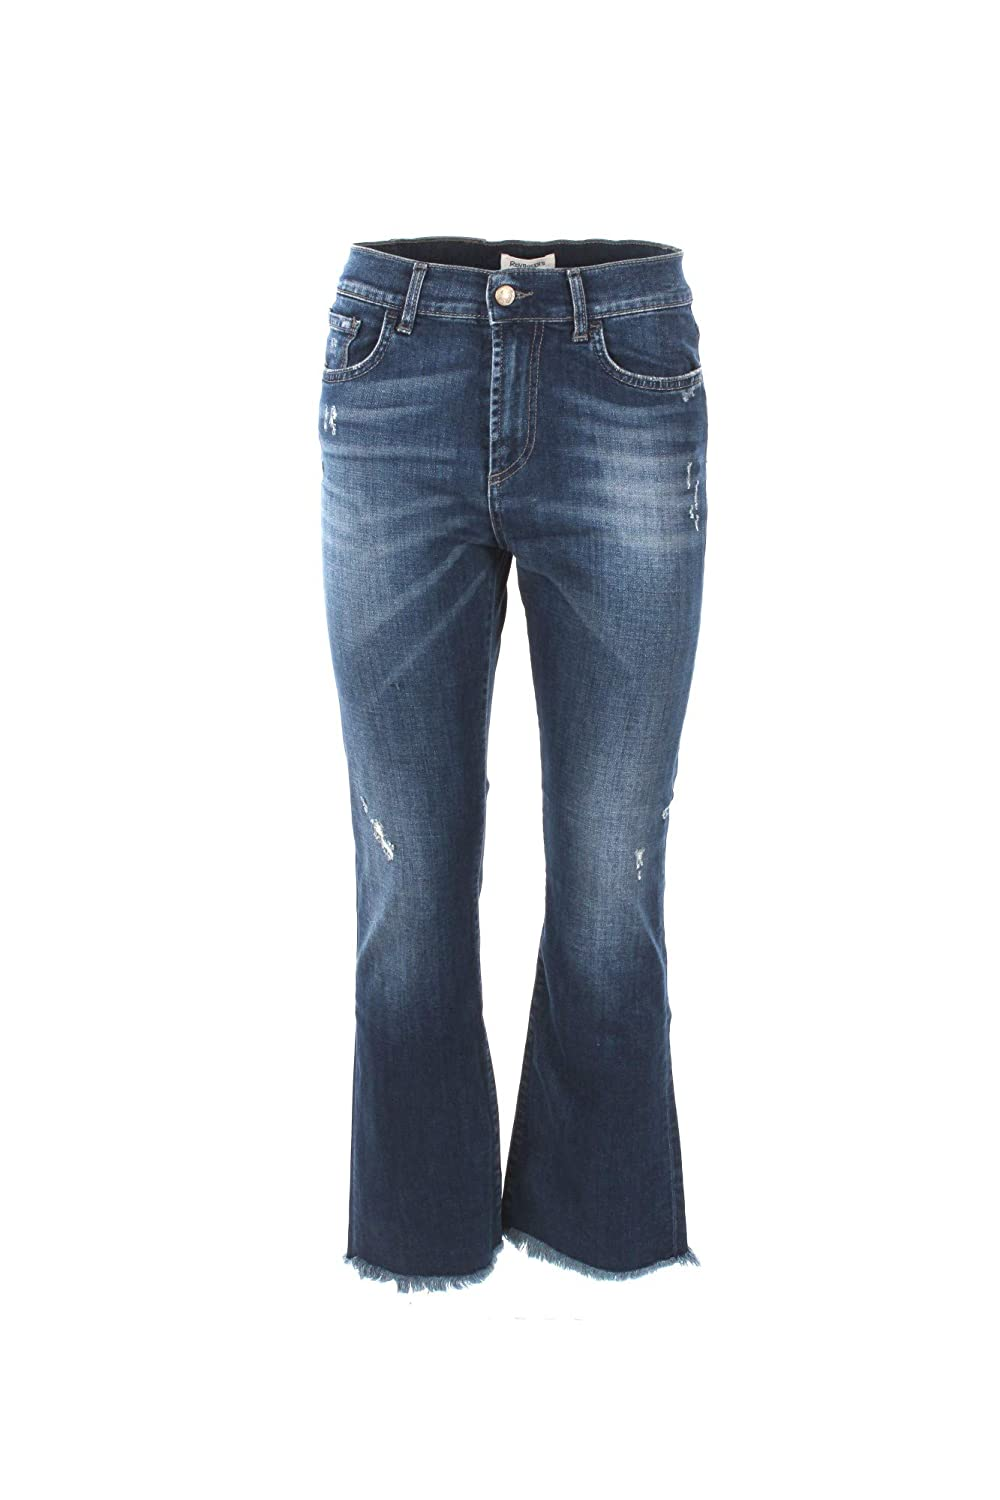 ROY ROGER'S Jeans Donna 32 Denim A18rnd036d1410779 Autunno Inverno 2018/19